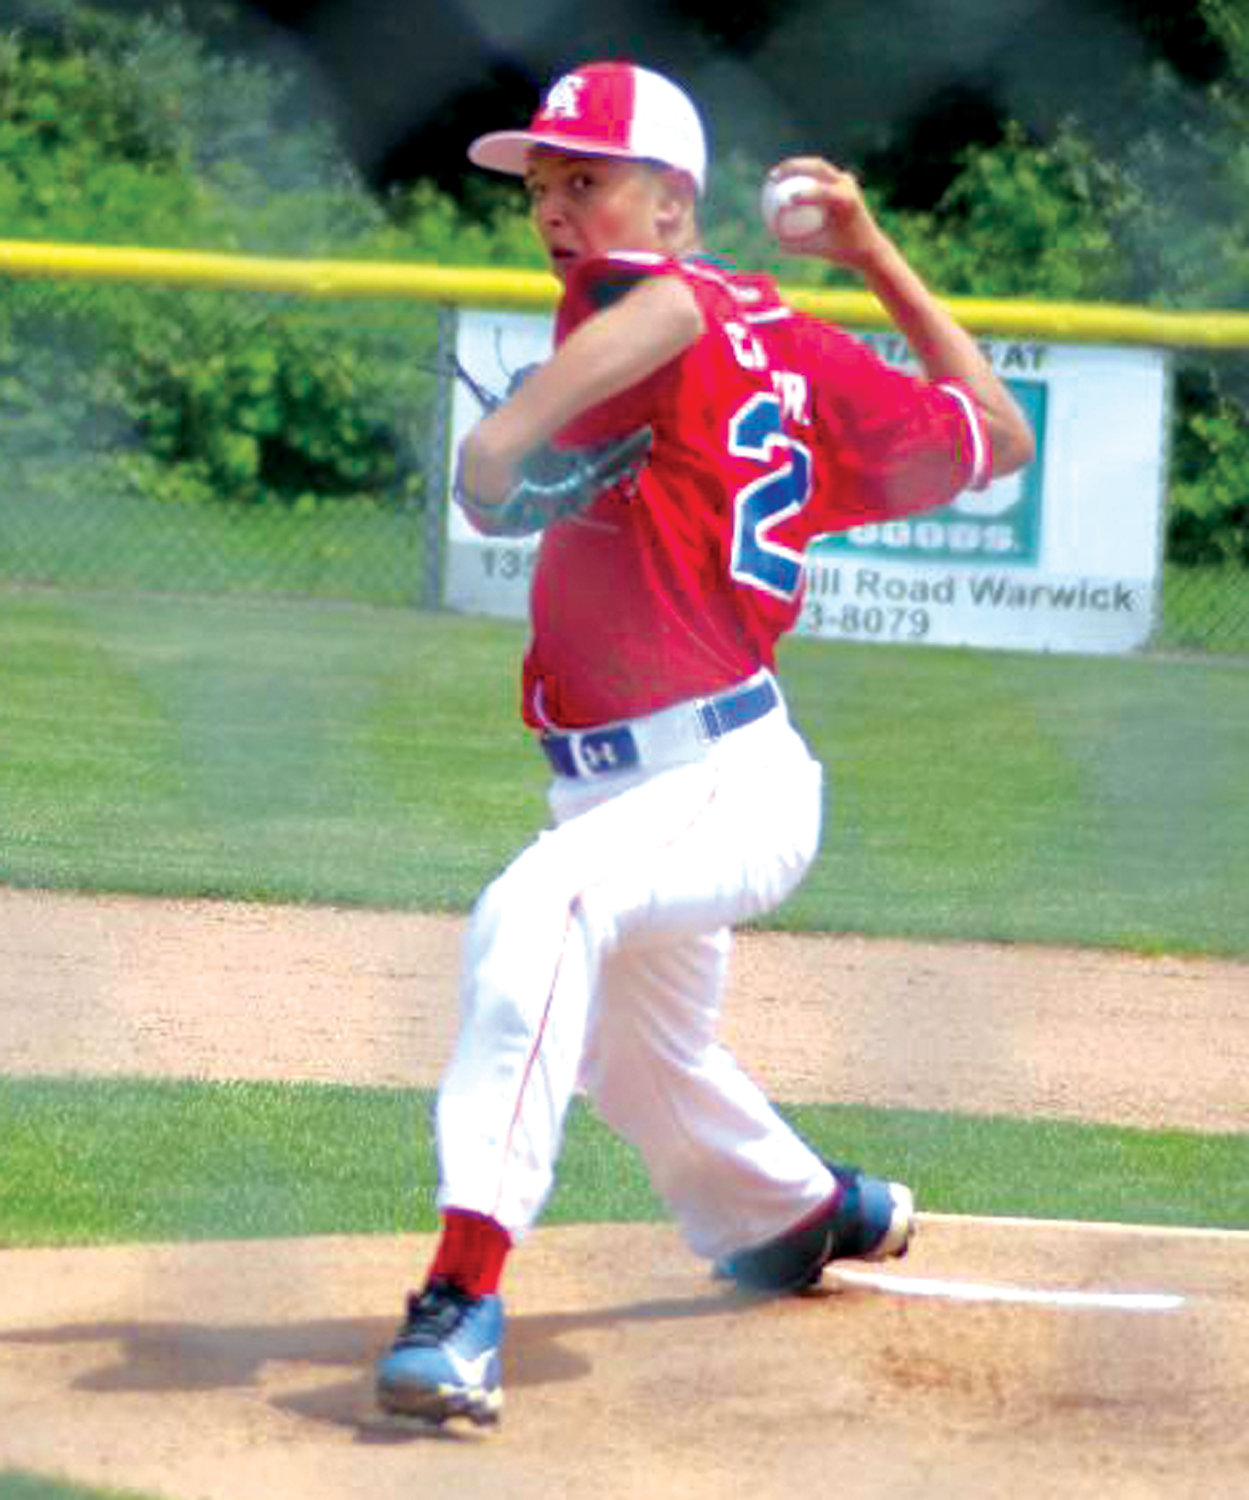 ON THE HILL: Warwick Continental American pitcher Nolan Canestrari delivers against South Kingstown last week during the state tournament. WCA will next face Warwick North on Saturday.